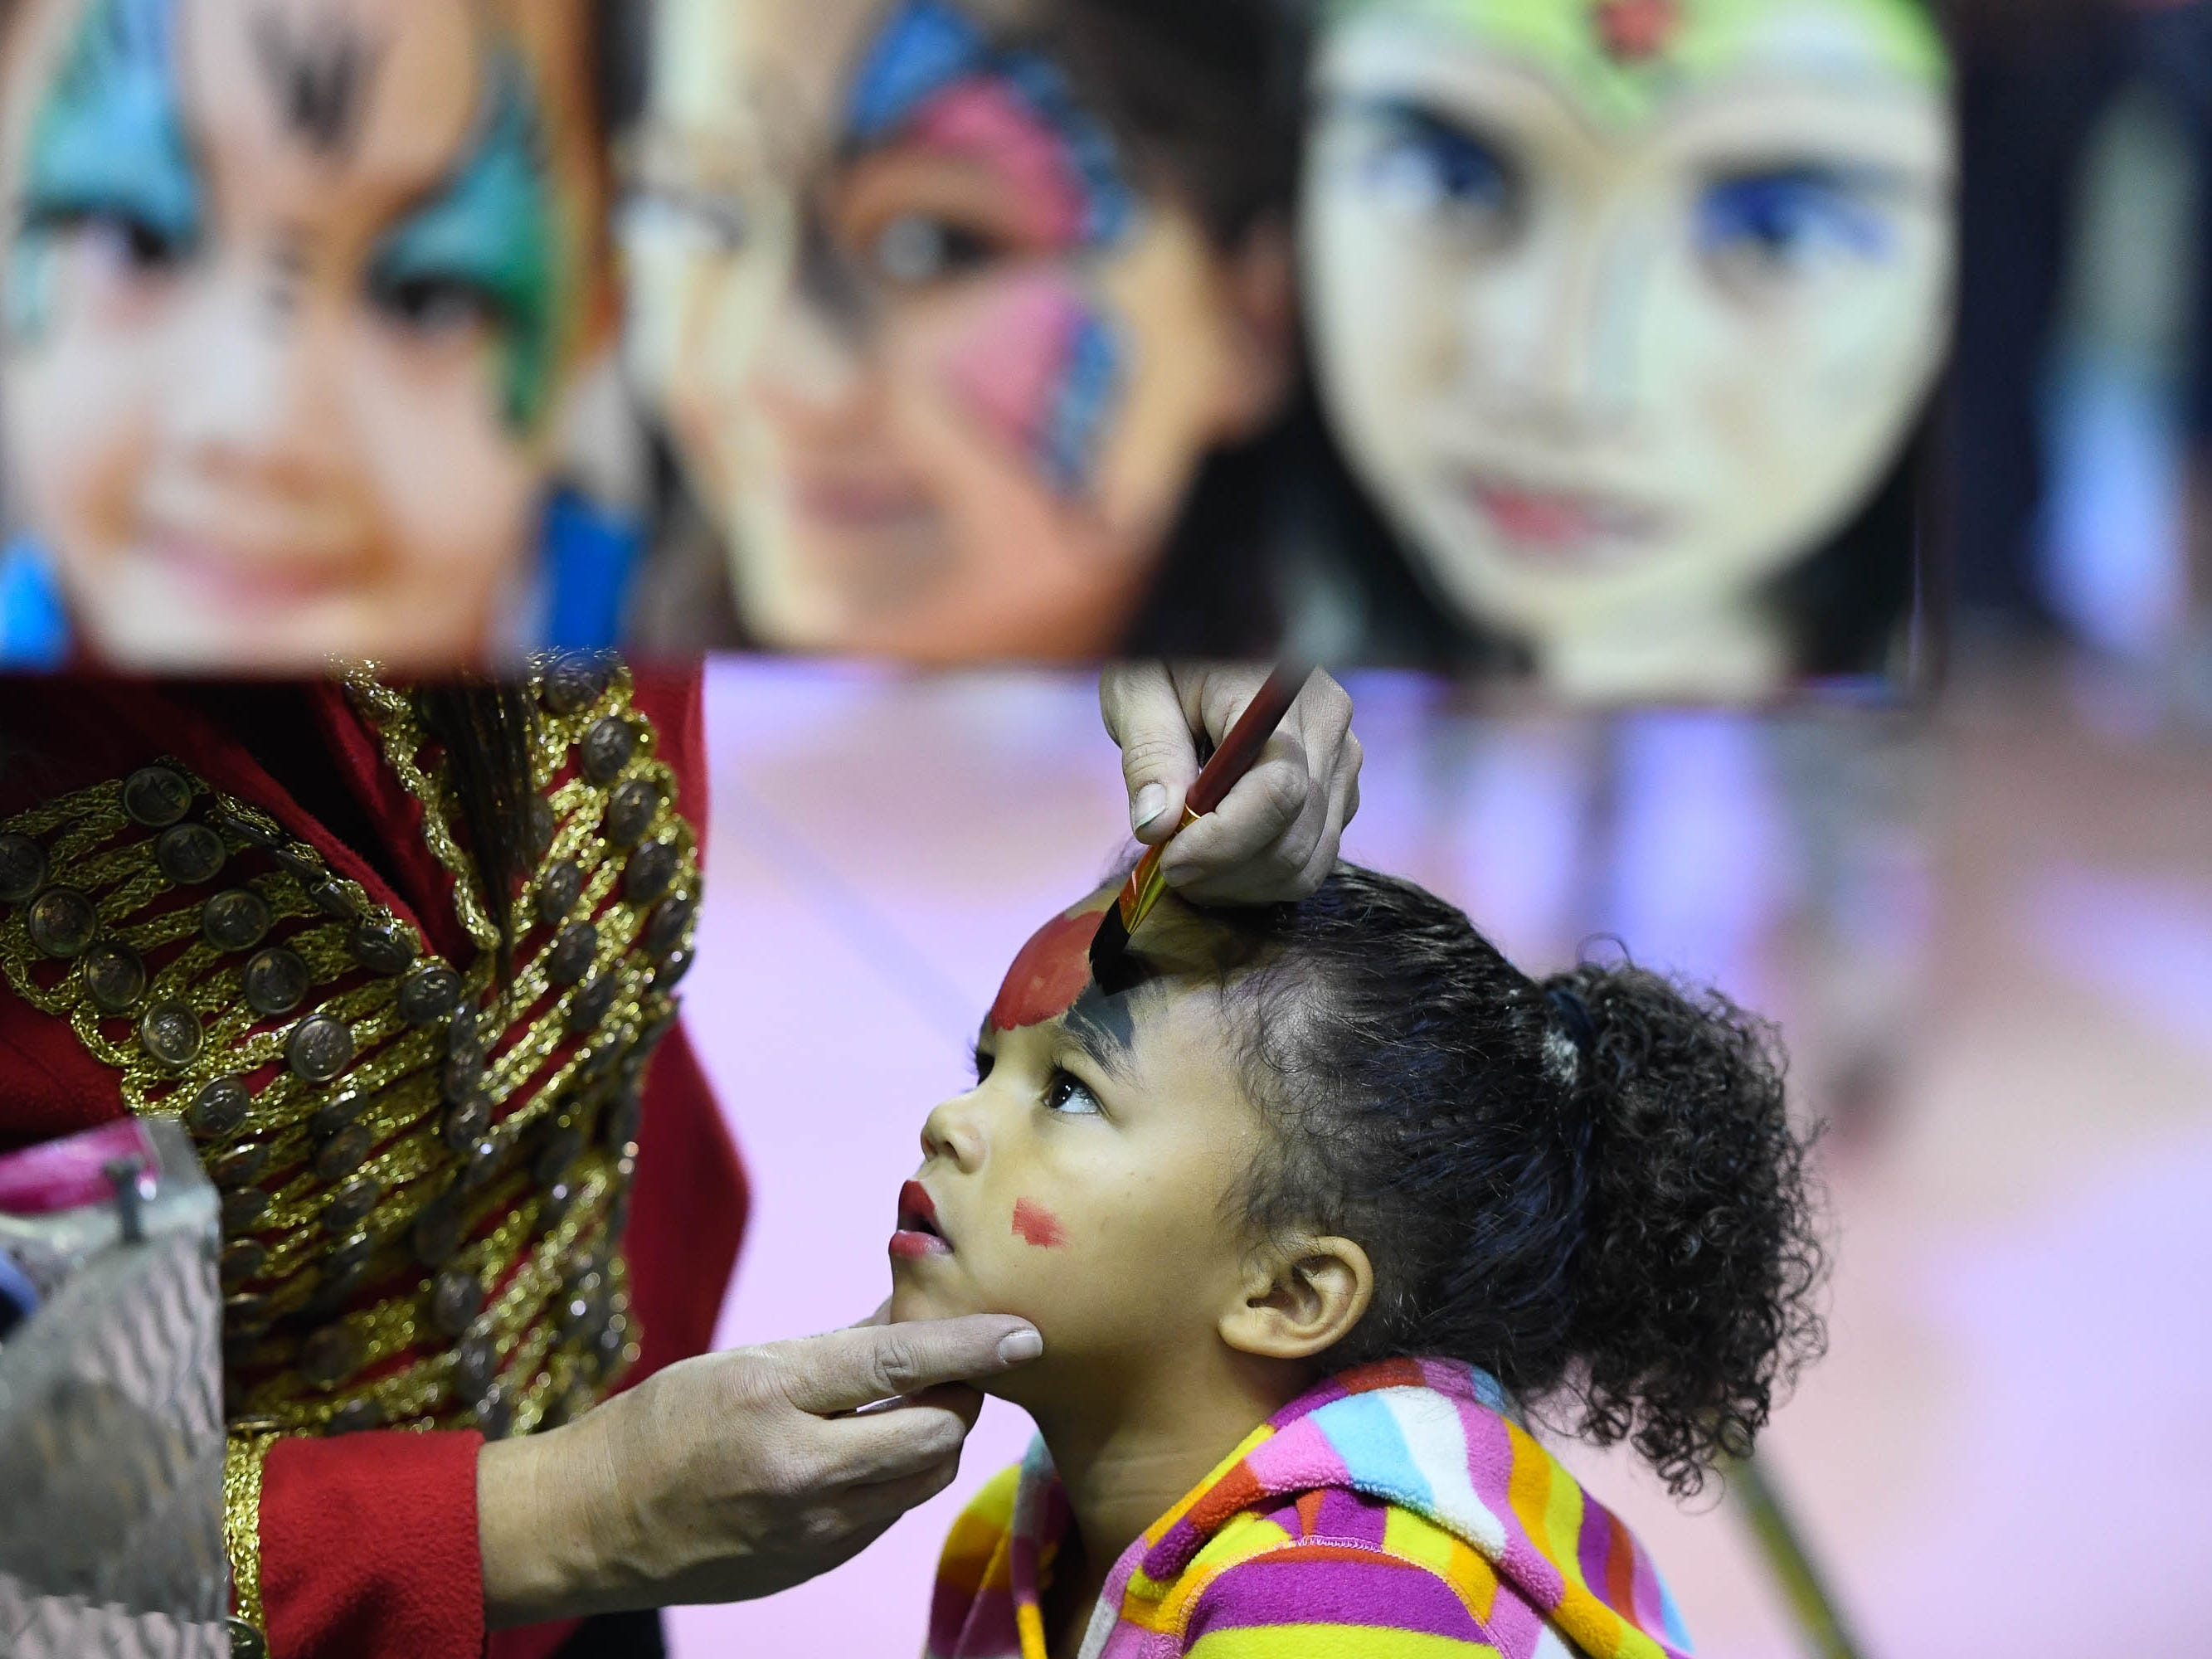 Bree Floyd, three years-old, gets her face painted during intermission at the 85th annual Hadi Shrine Circus at the Evansville Ford Center Friday, November 23, 2018.